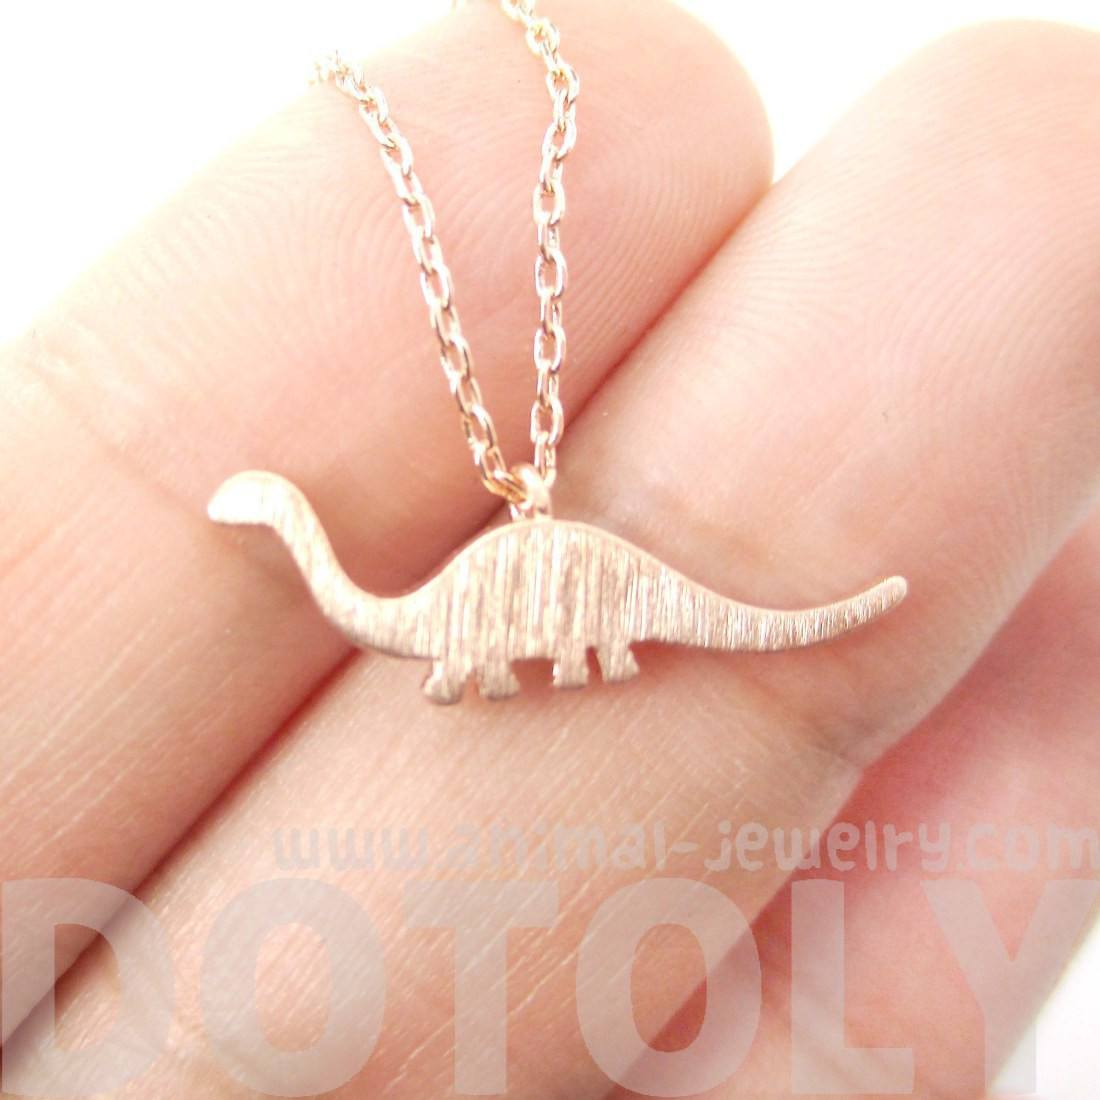 Brontosaurus Sauropoda Dinosaur Silhouette Charm Necklace in Rose Gold